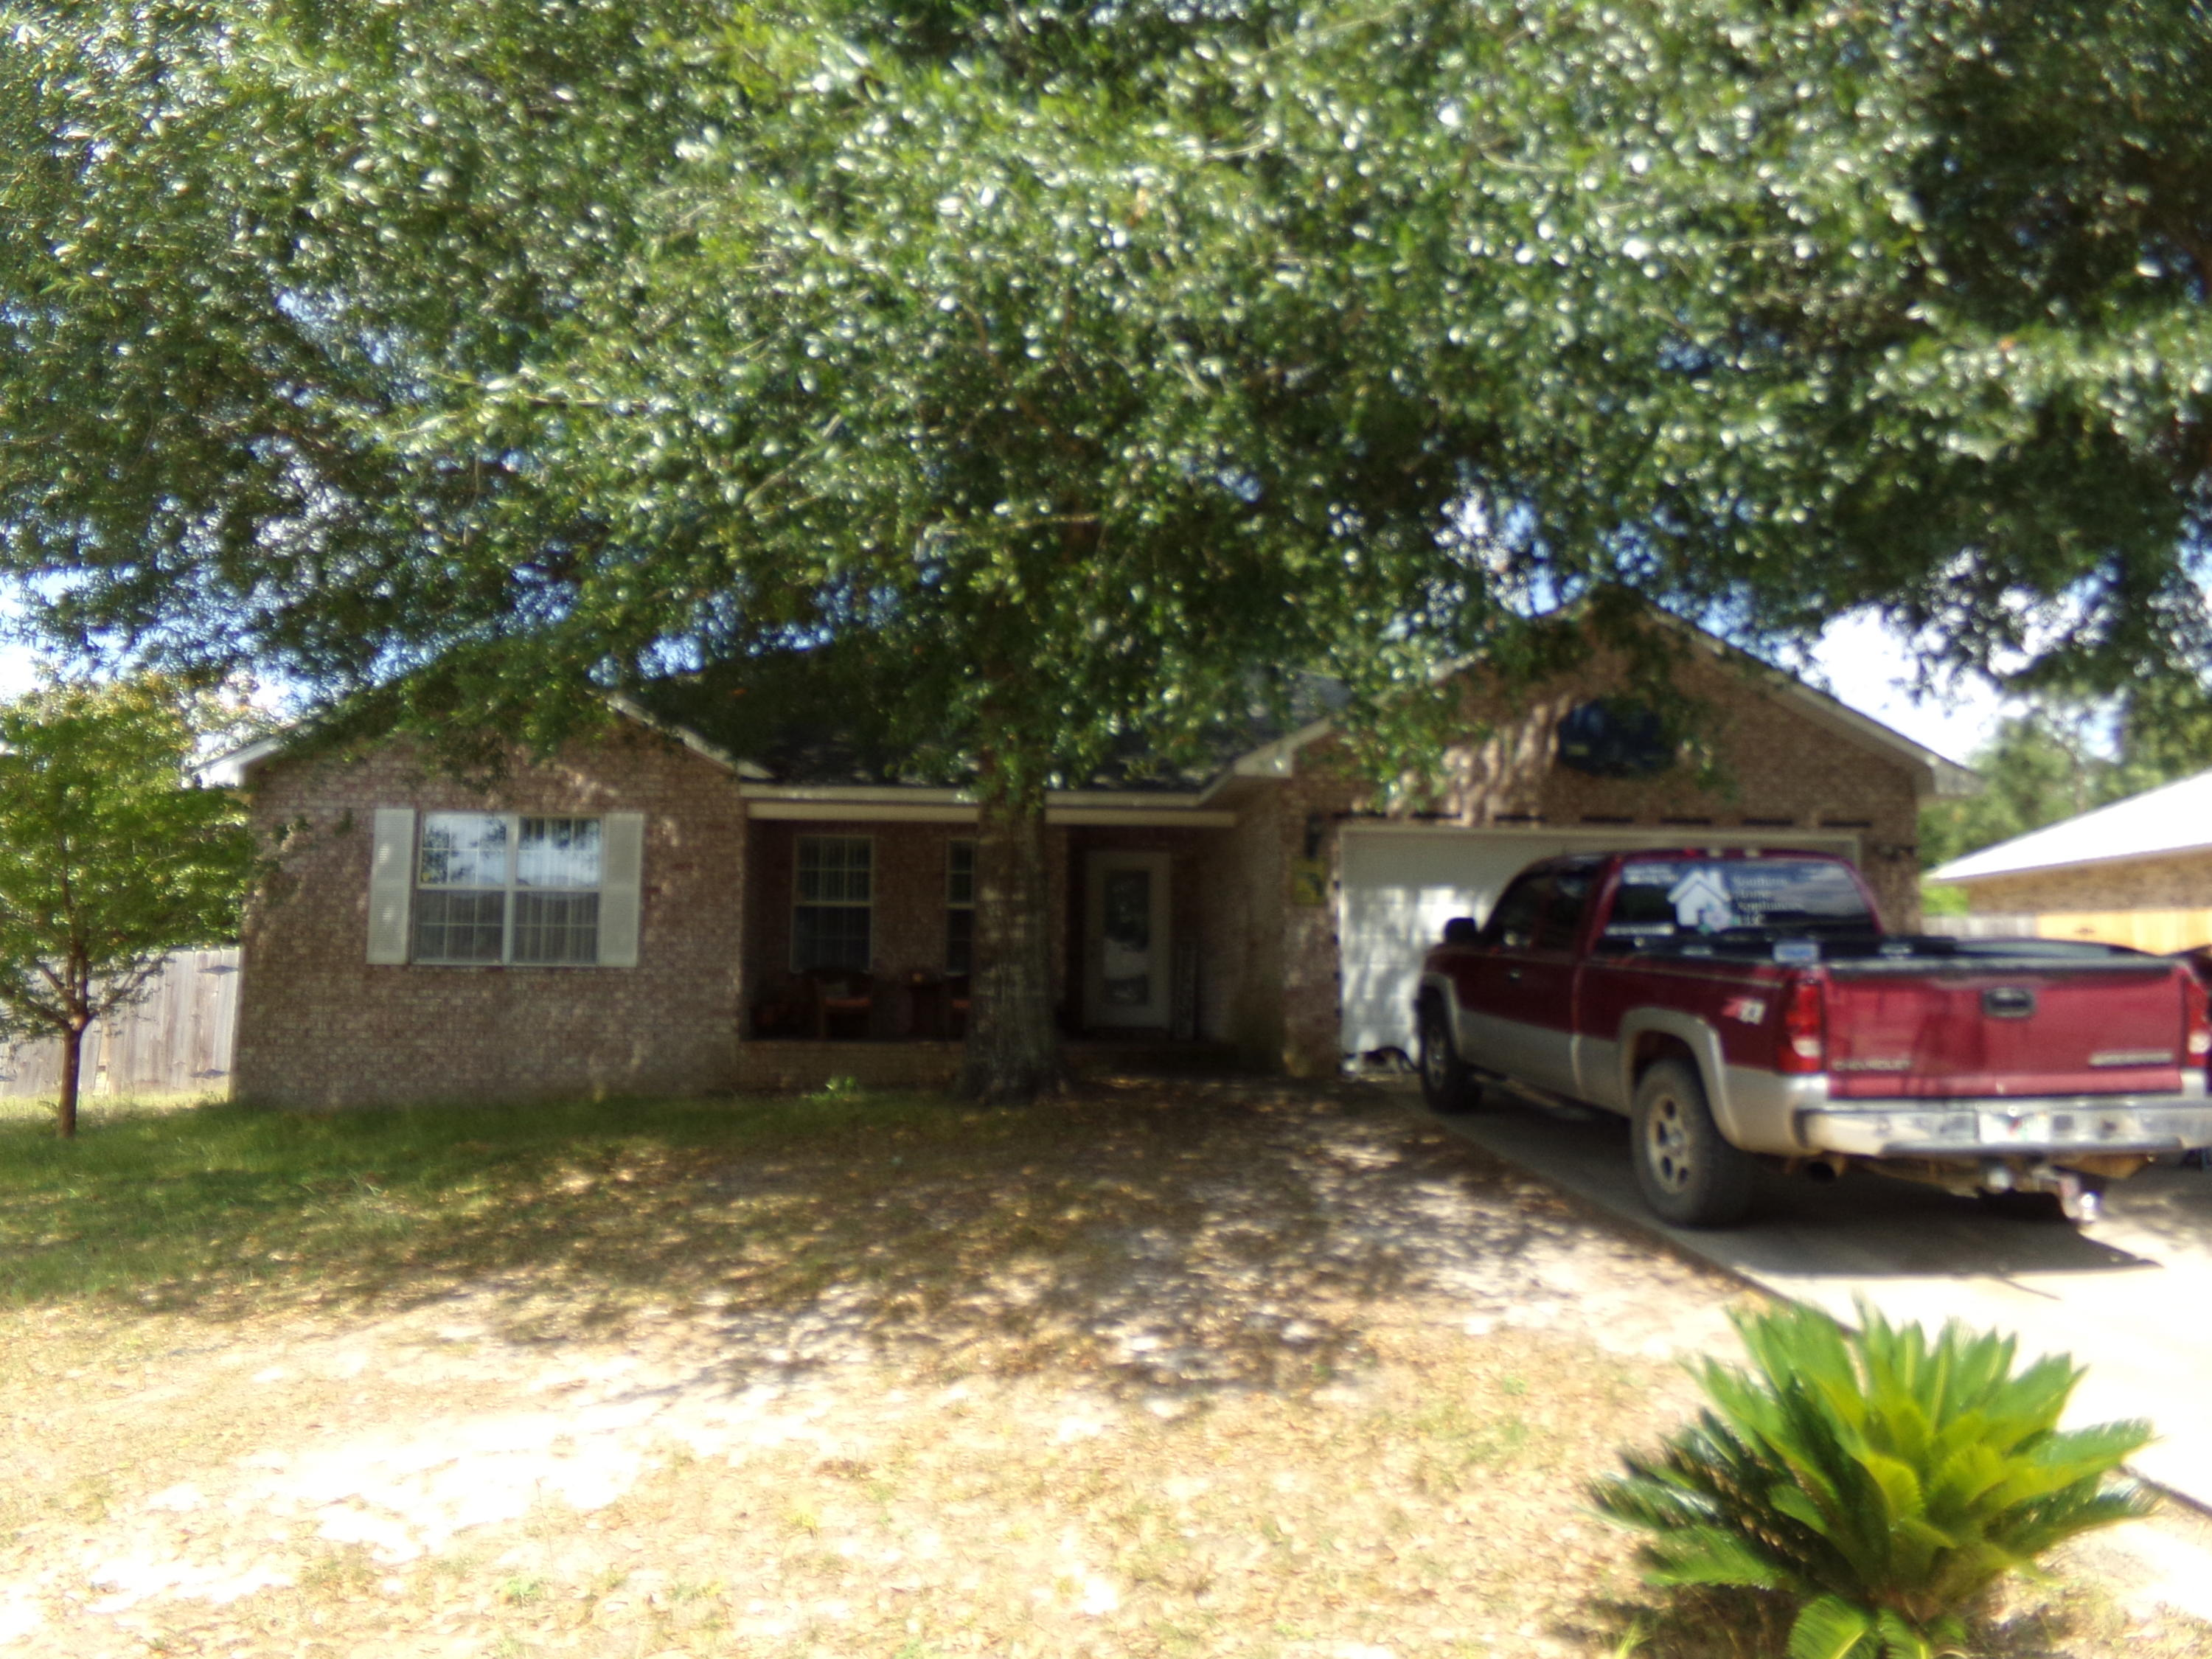 4 Bedroom 2 Bath home on level lot in Old Bethel Estates~  Large great room with open floor plan~  K